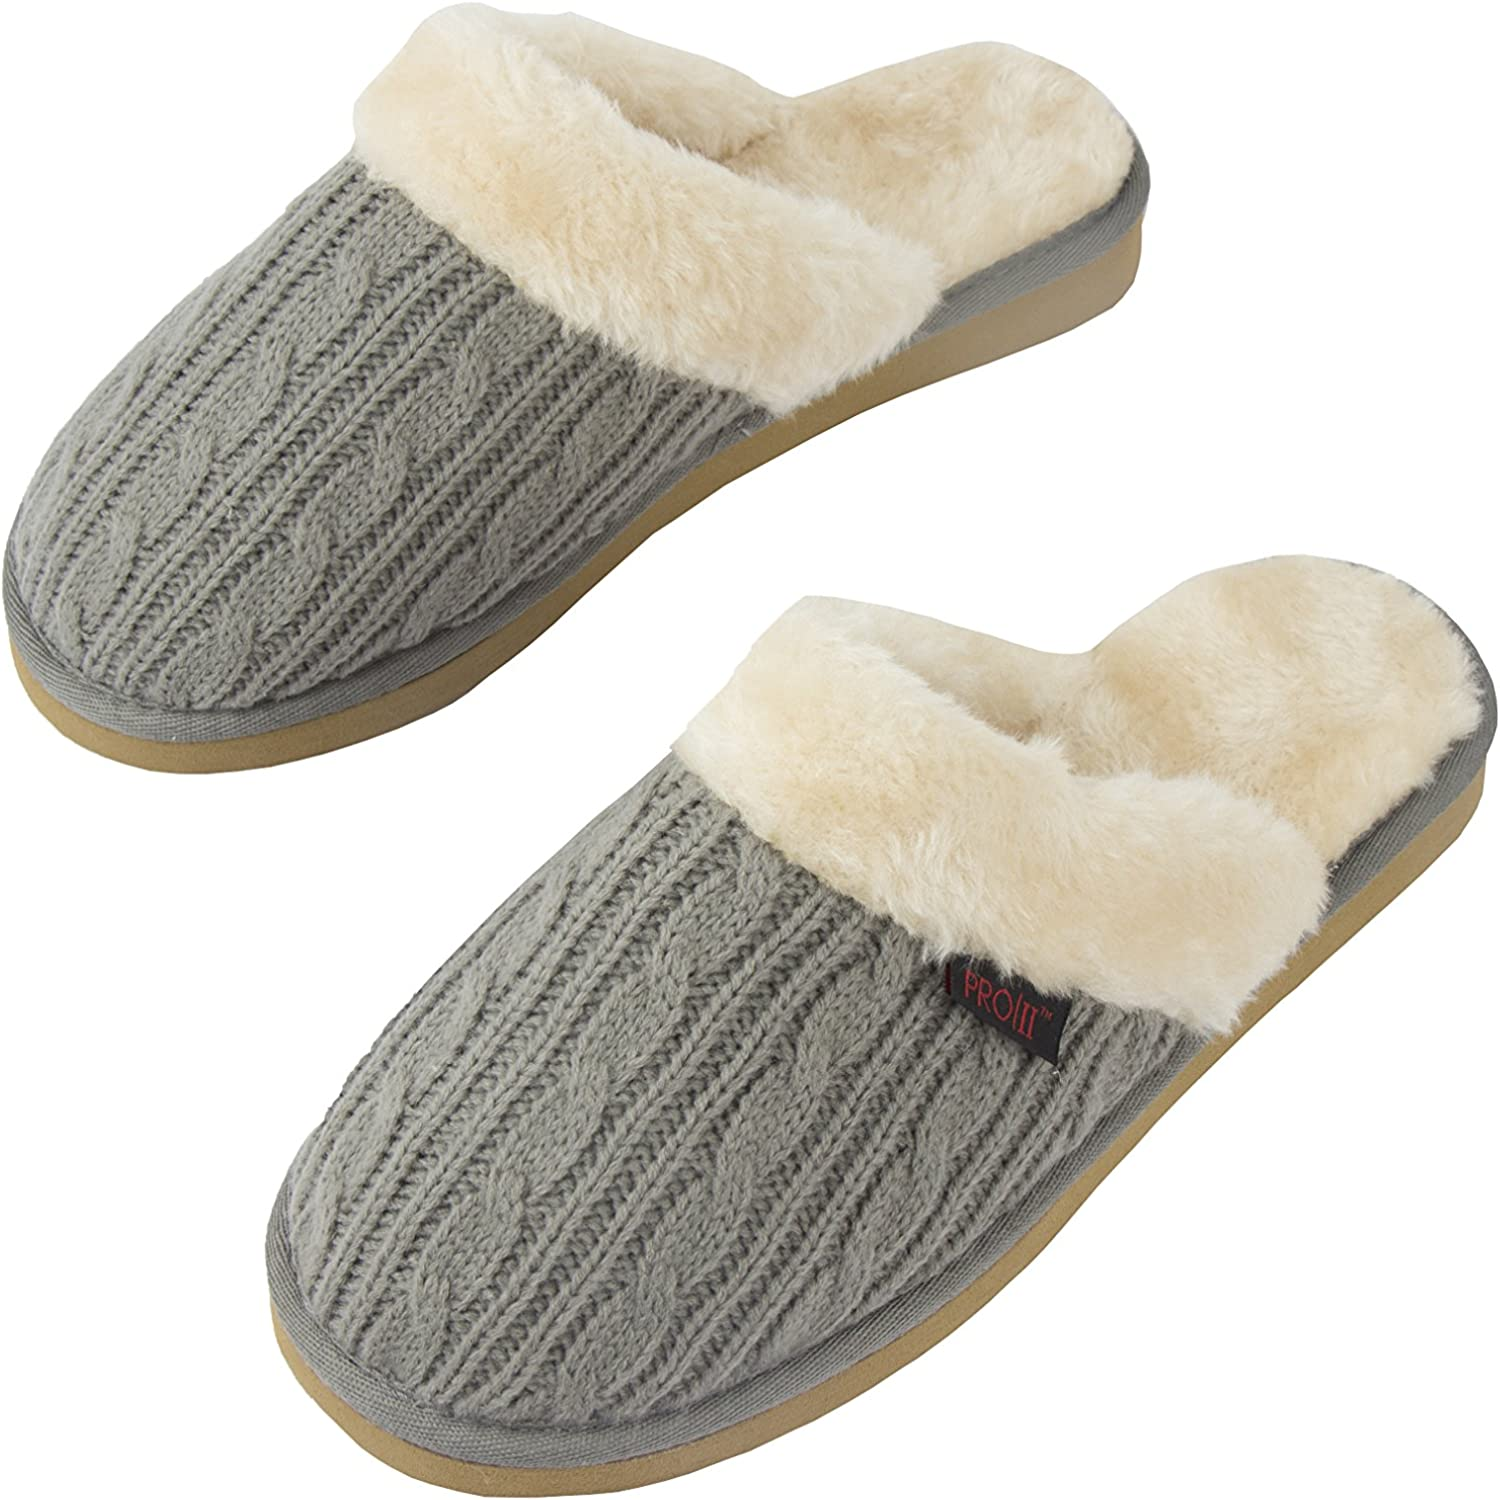 Bodytec Wellbeing Women's Slippers with Added Support and Comfort:  Amazon.co.uk: Shoes & Bags